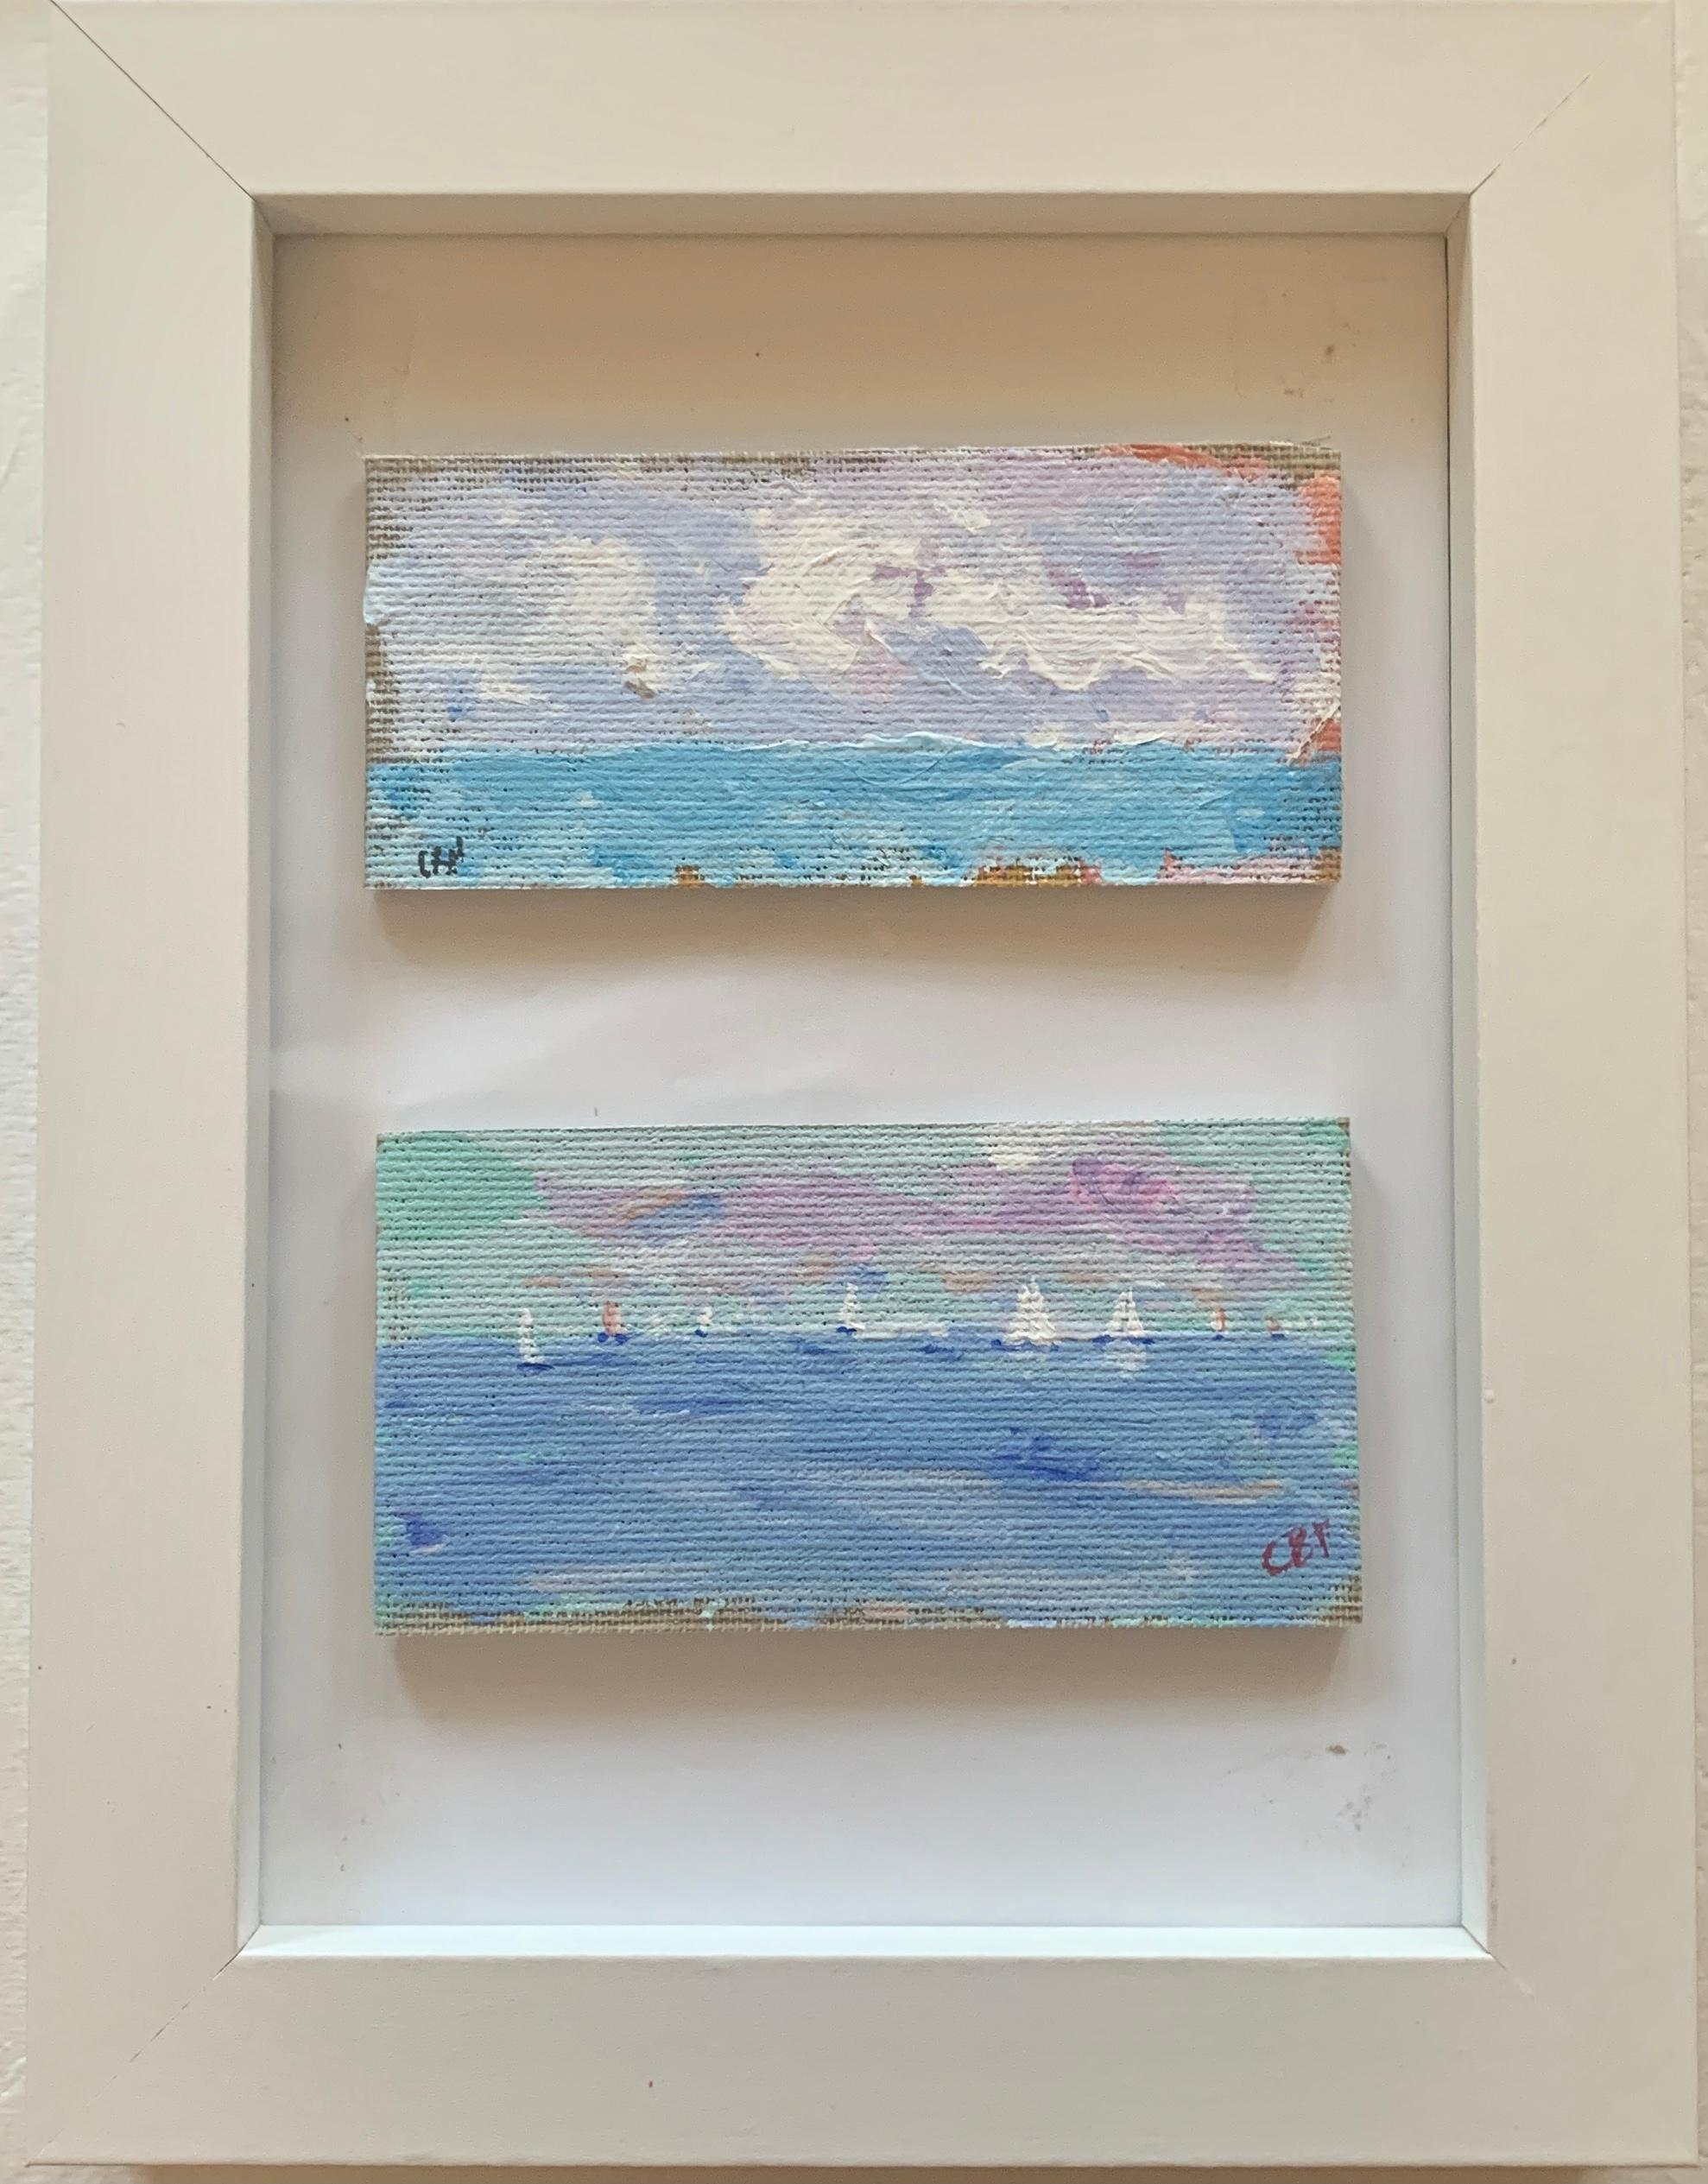 Impressionist oil sketch of yachts off the coast of Nantucket with a cloud study